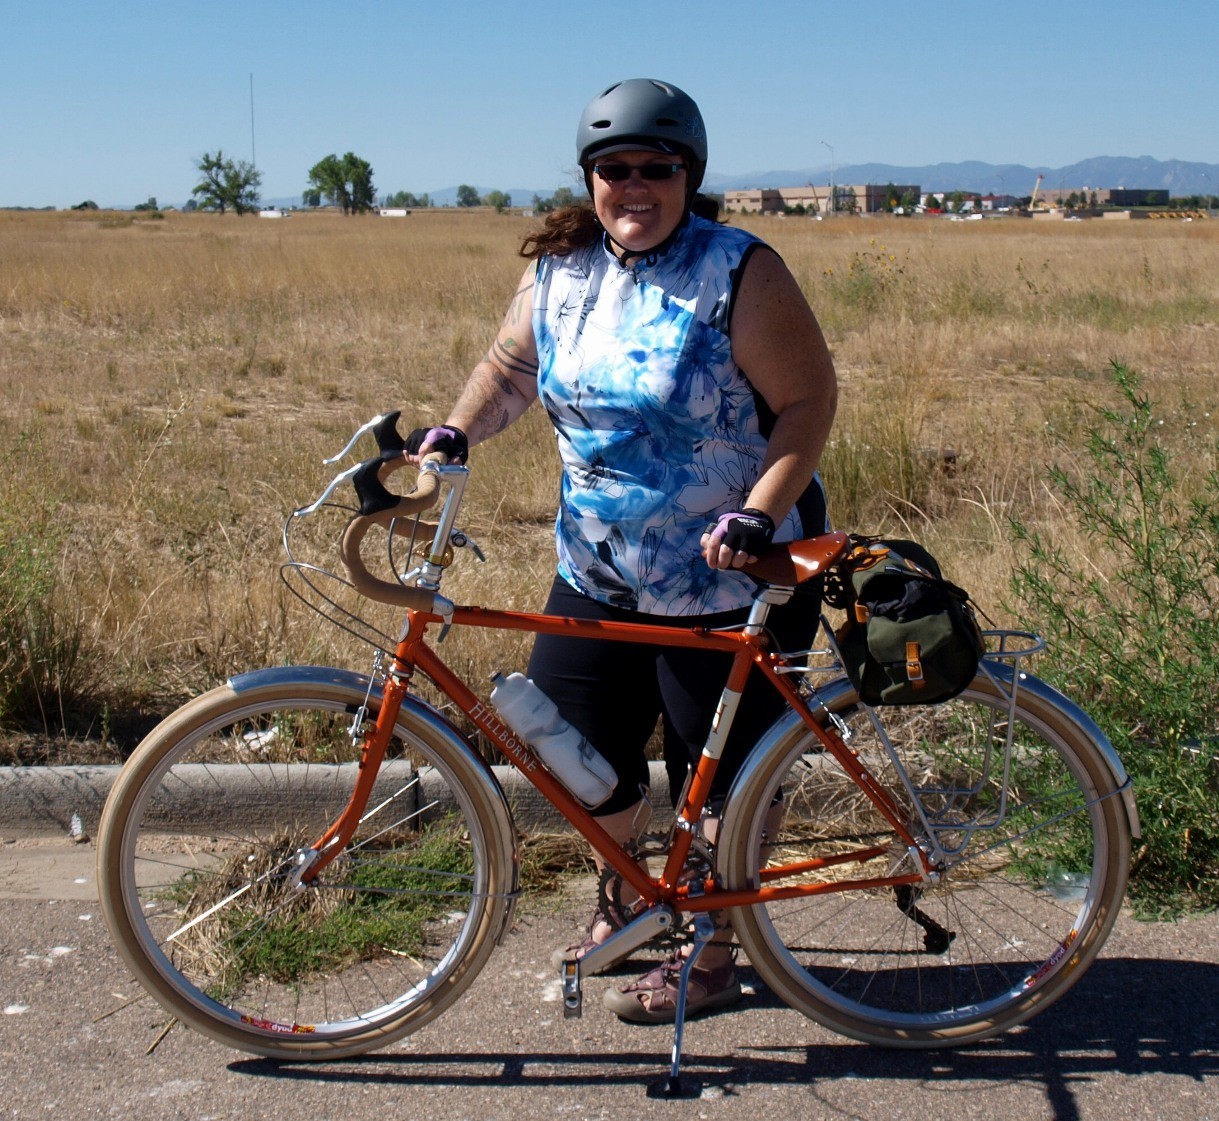 Weight loss by cycling, lose weight quickly tips